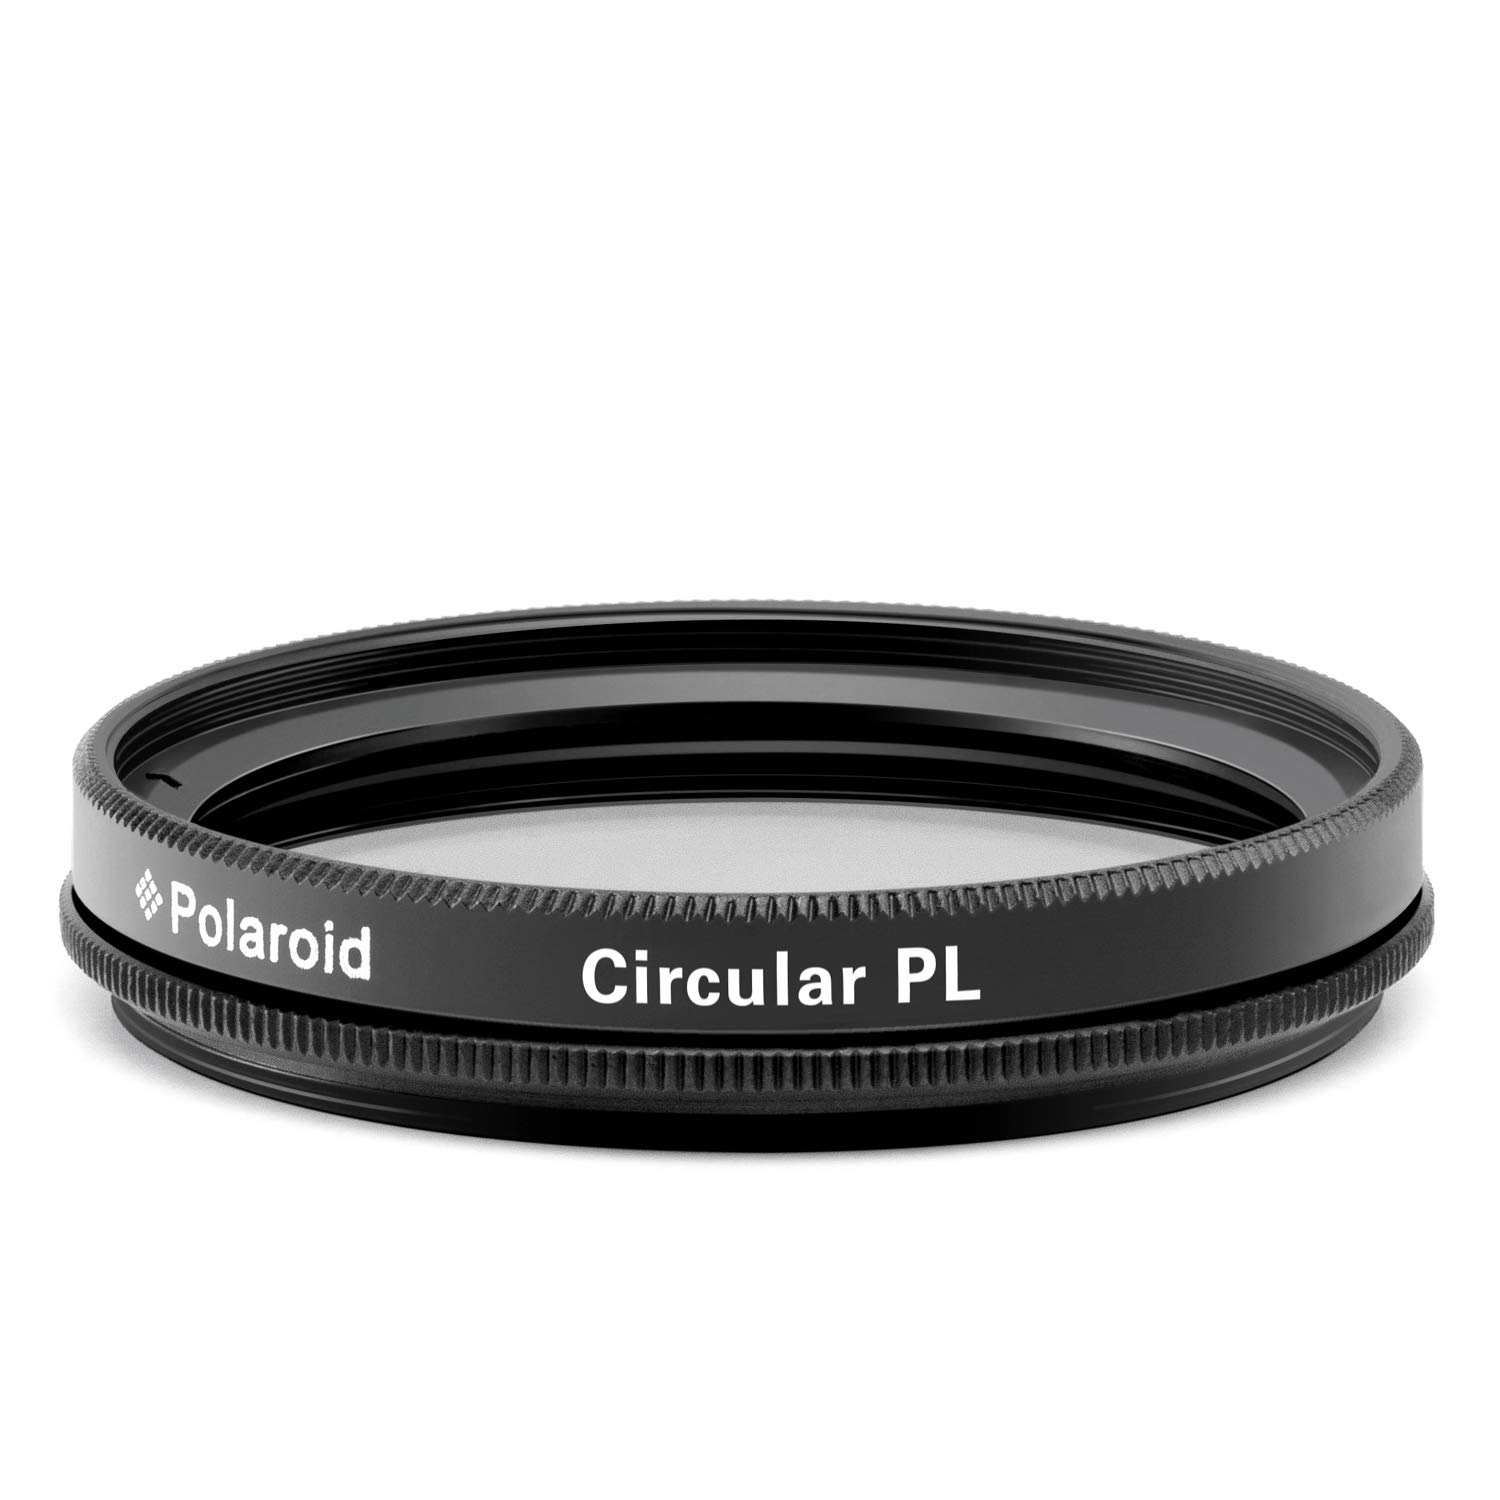 Polaroid Optics 62mm Multi-Coated Circular Polarizer Filter [CPL] For 'On Location' Color Saturation, Contrast & Reflection Control– Compatible w/All Popular Camera Lens Models PLFILCPL62